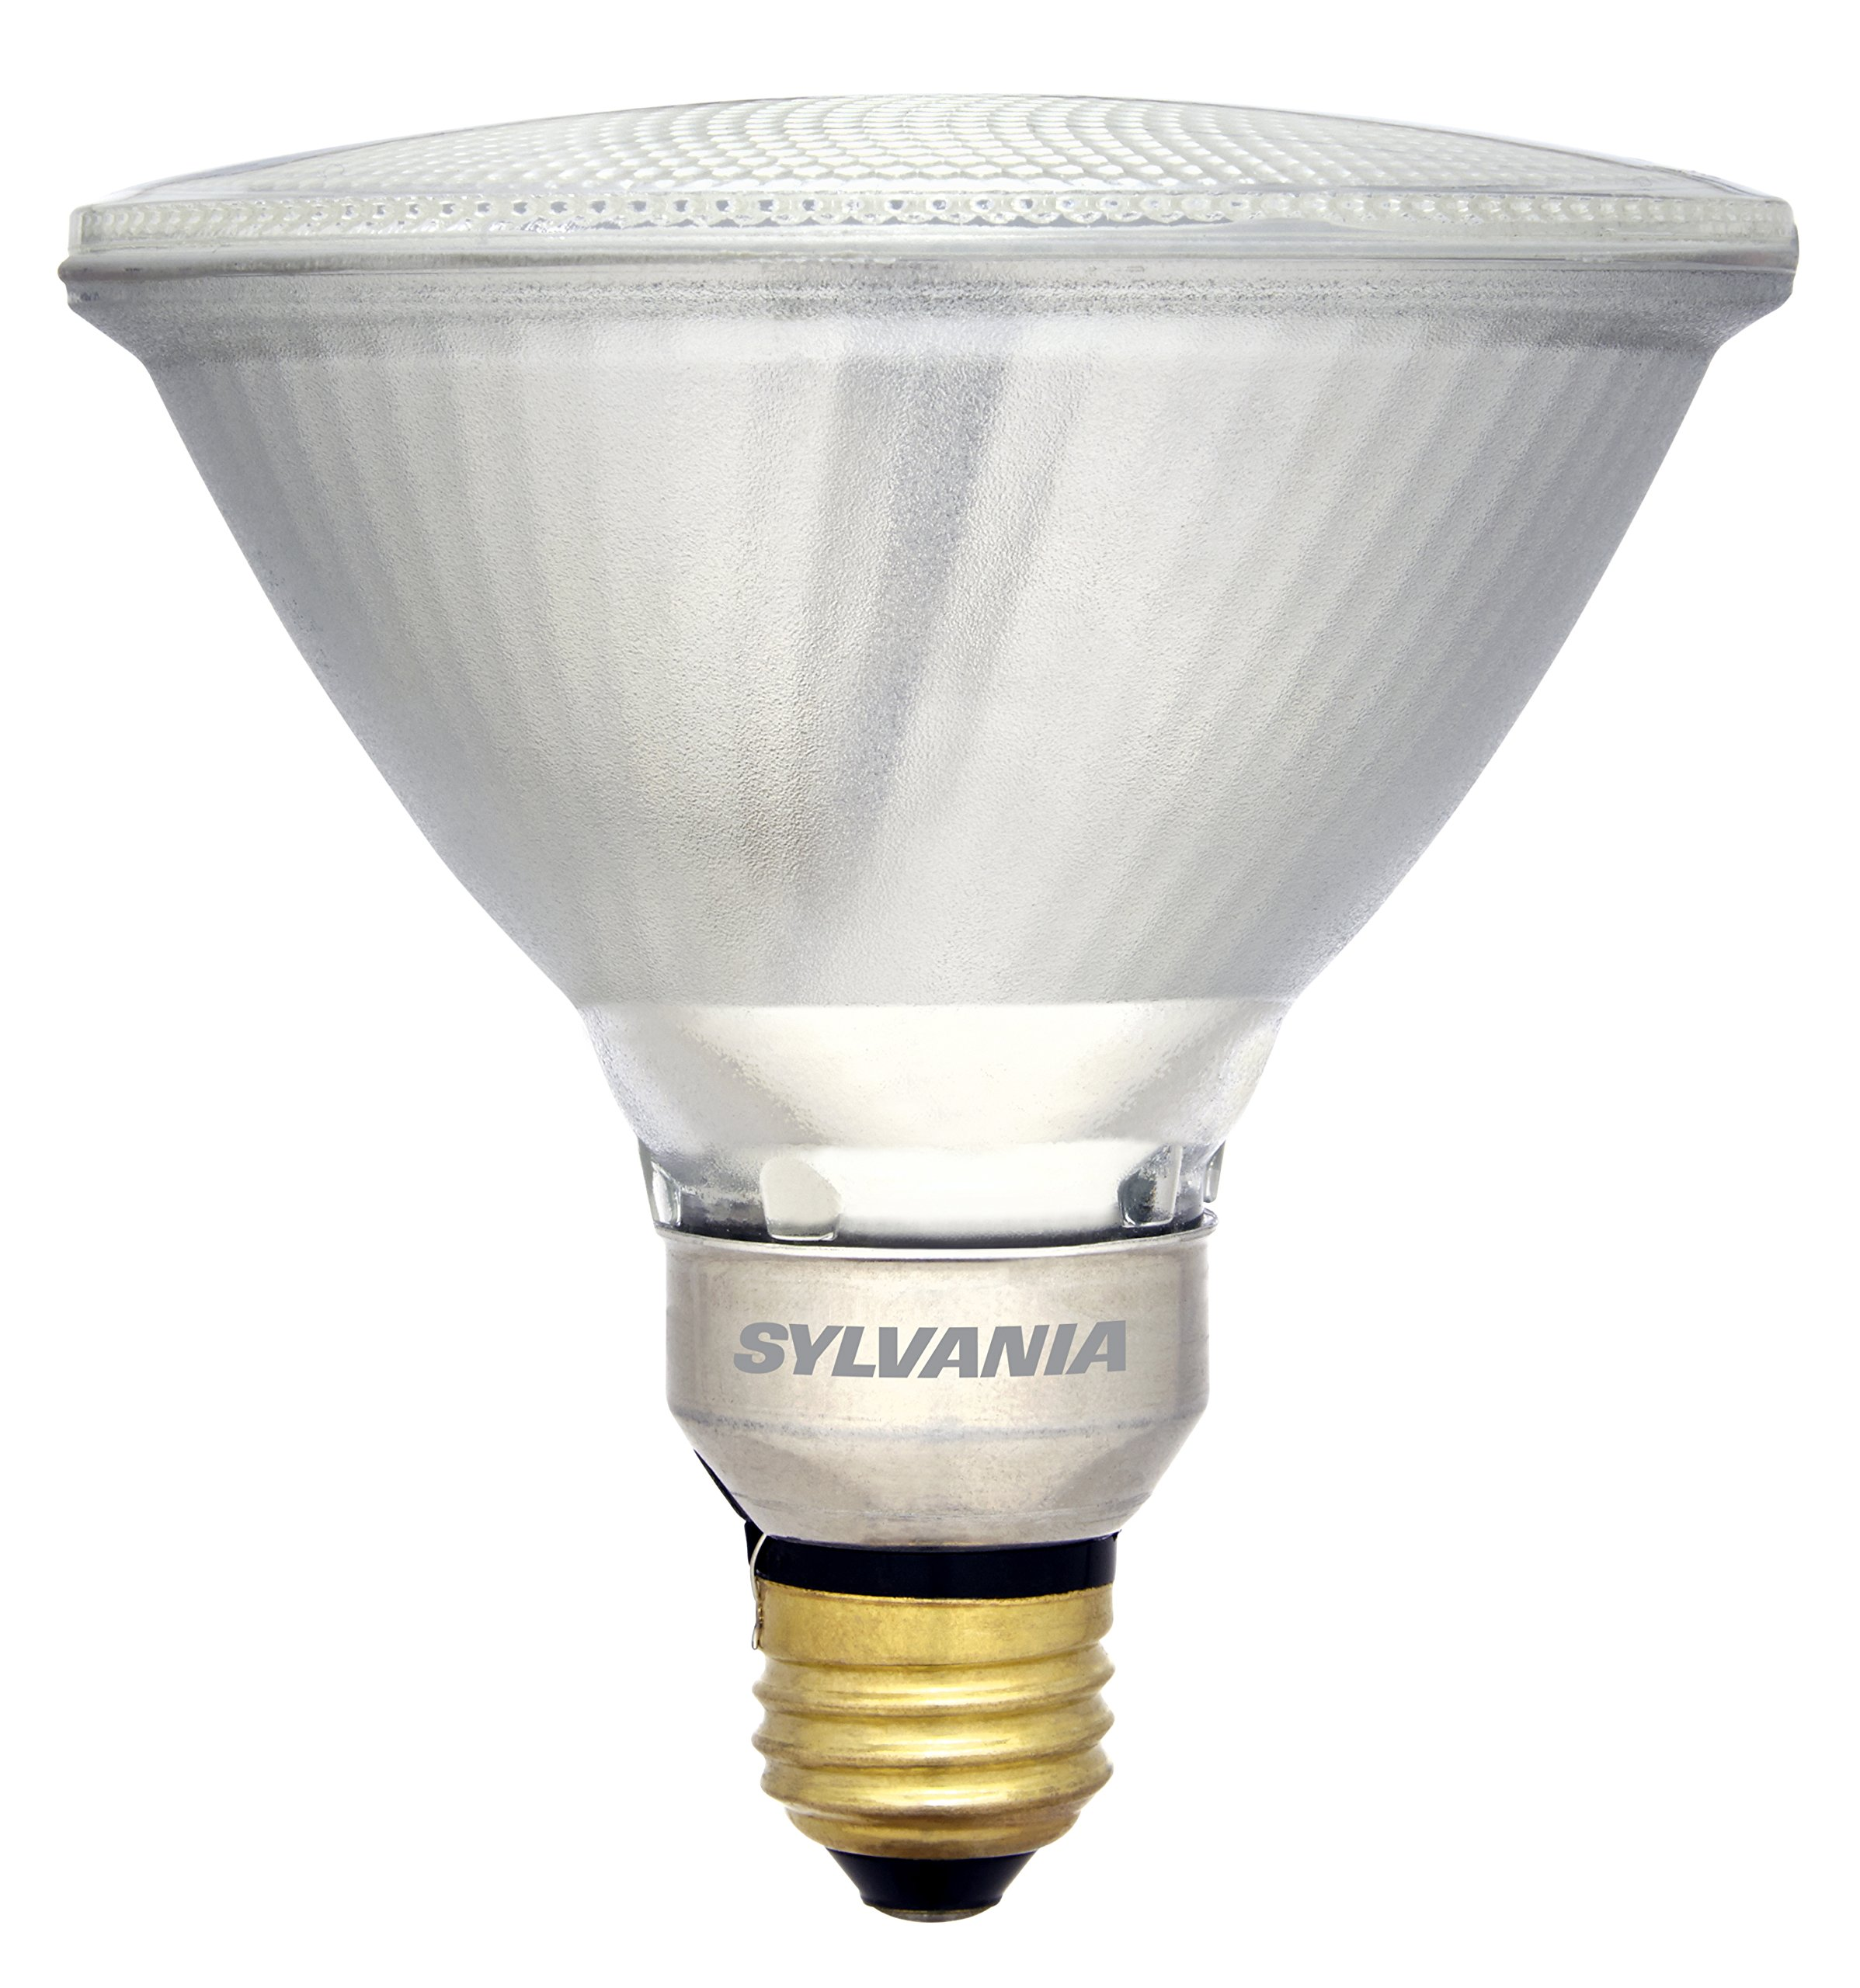 Sylvania 120 Watt Equivalent, PAR38 LED Light Bulb, Bright White, Made in The USA with US and Global Parts, 2 Pack